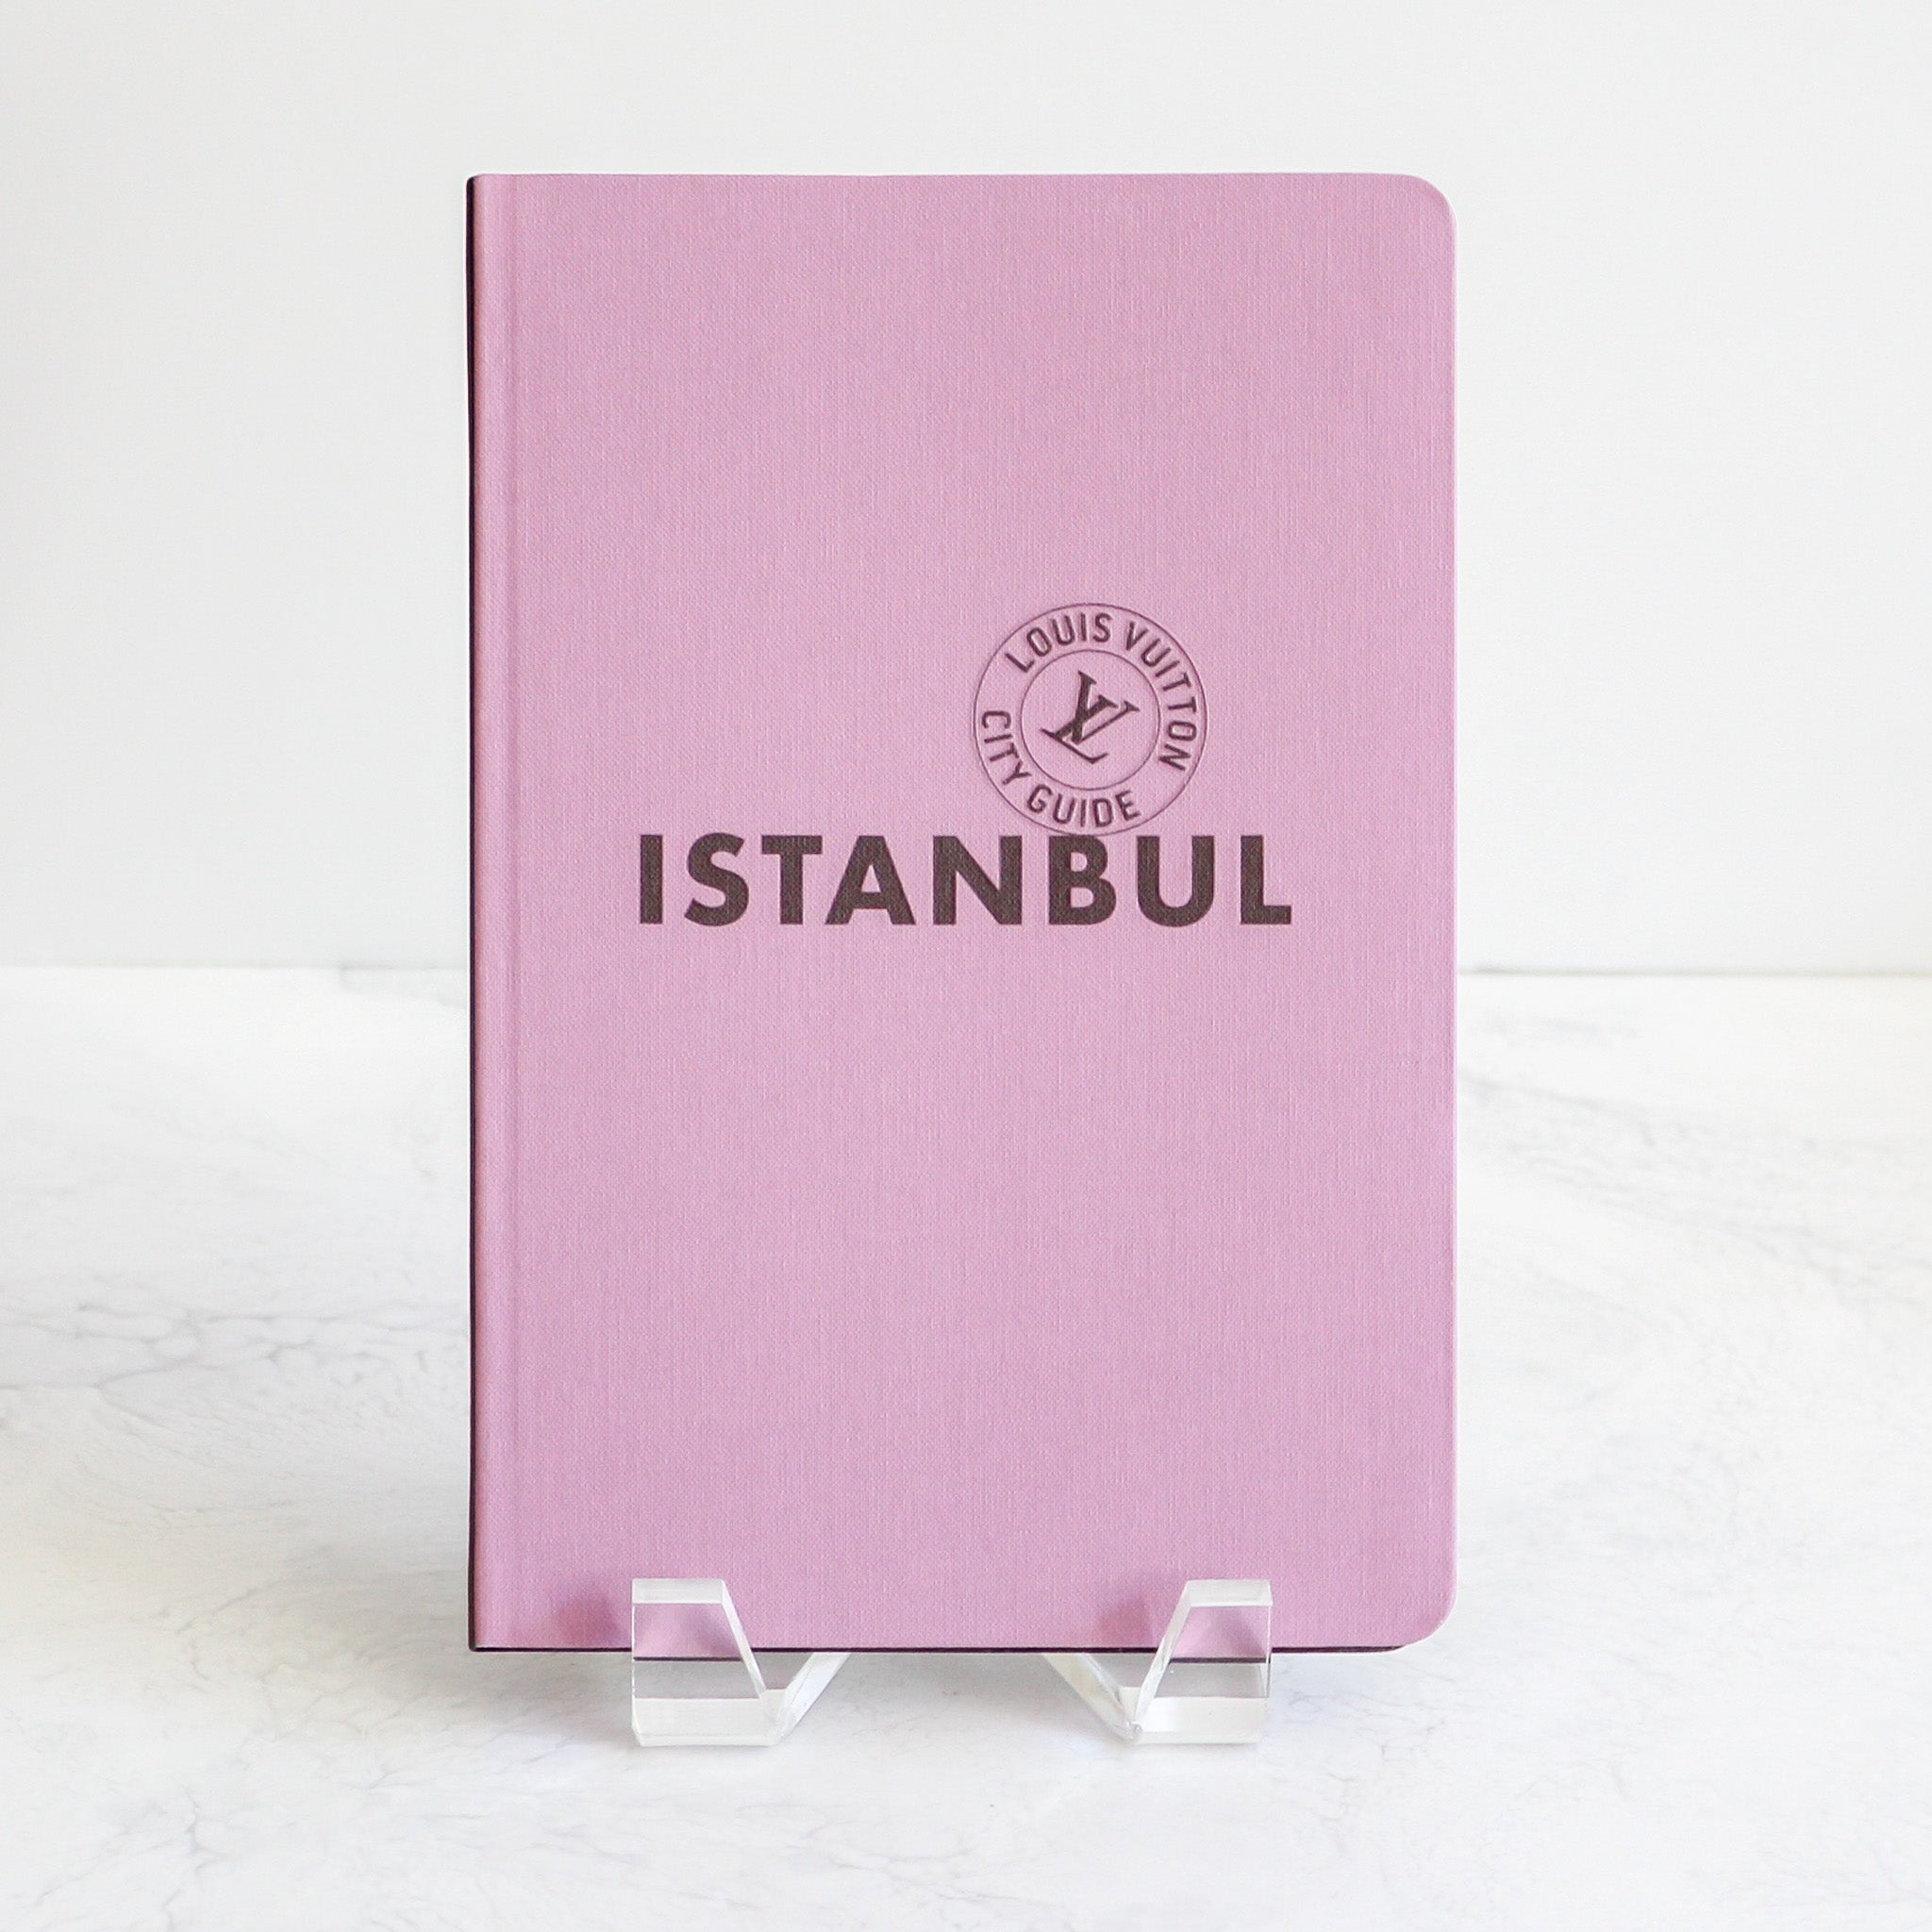 Louis Vuitton Istanbul City Guide 2019